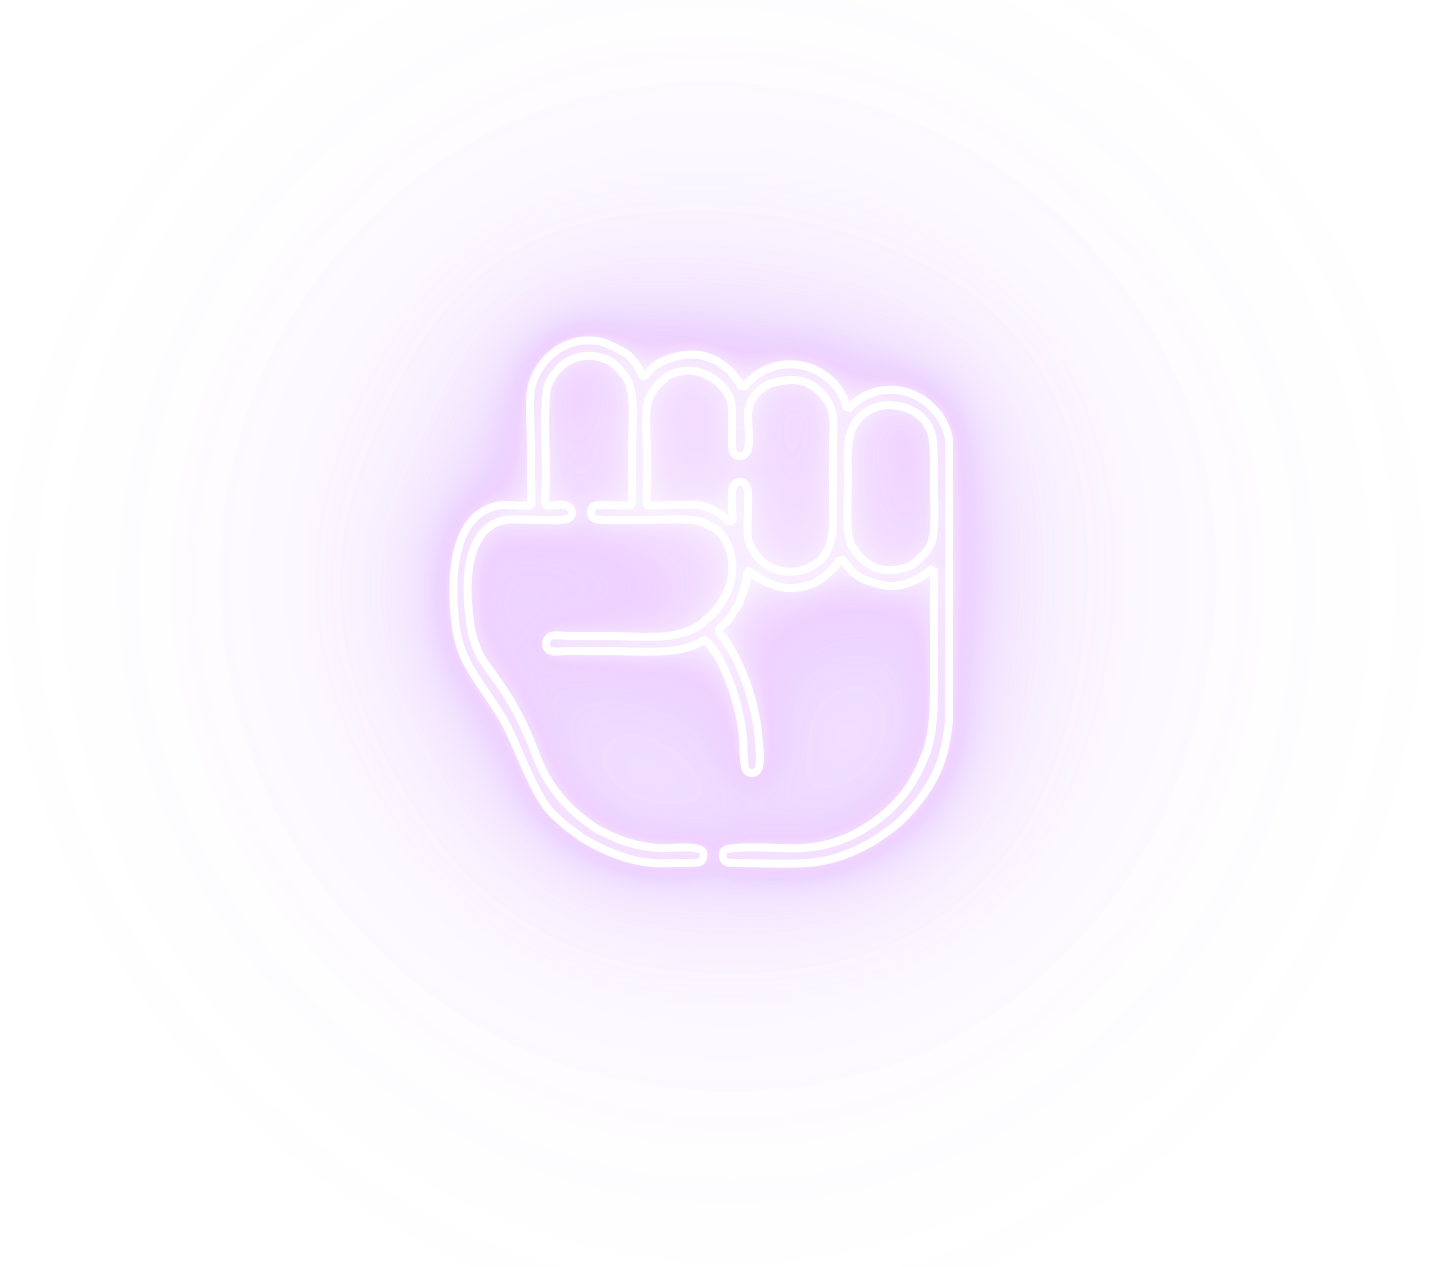 neon icon of a fist raised representing peace and social justice